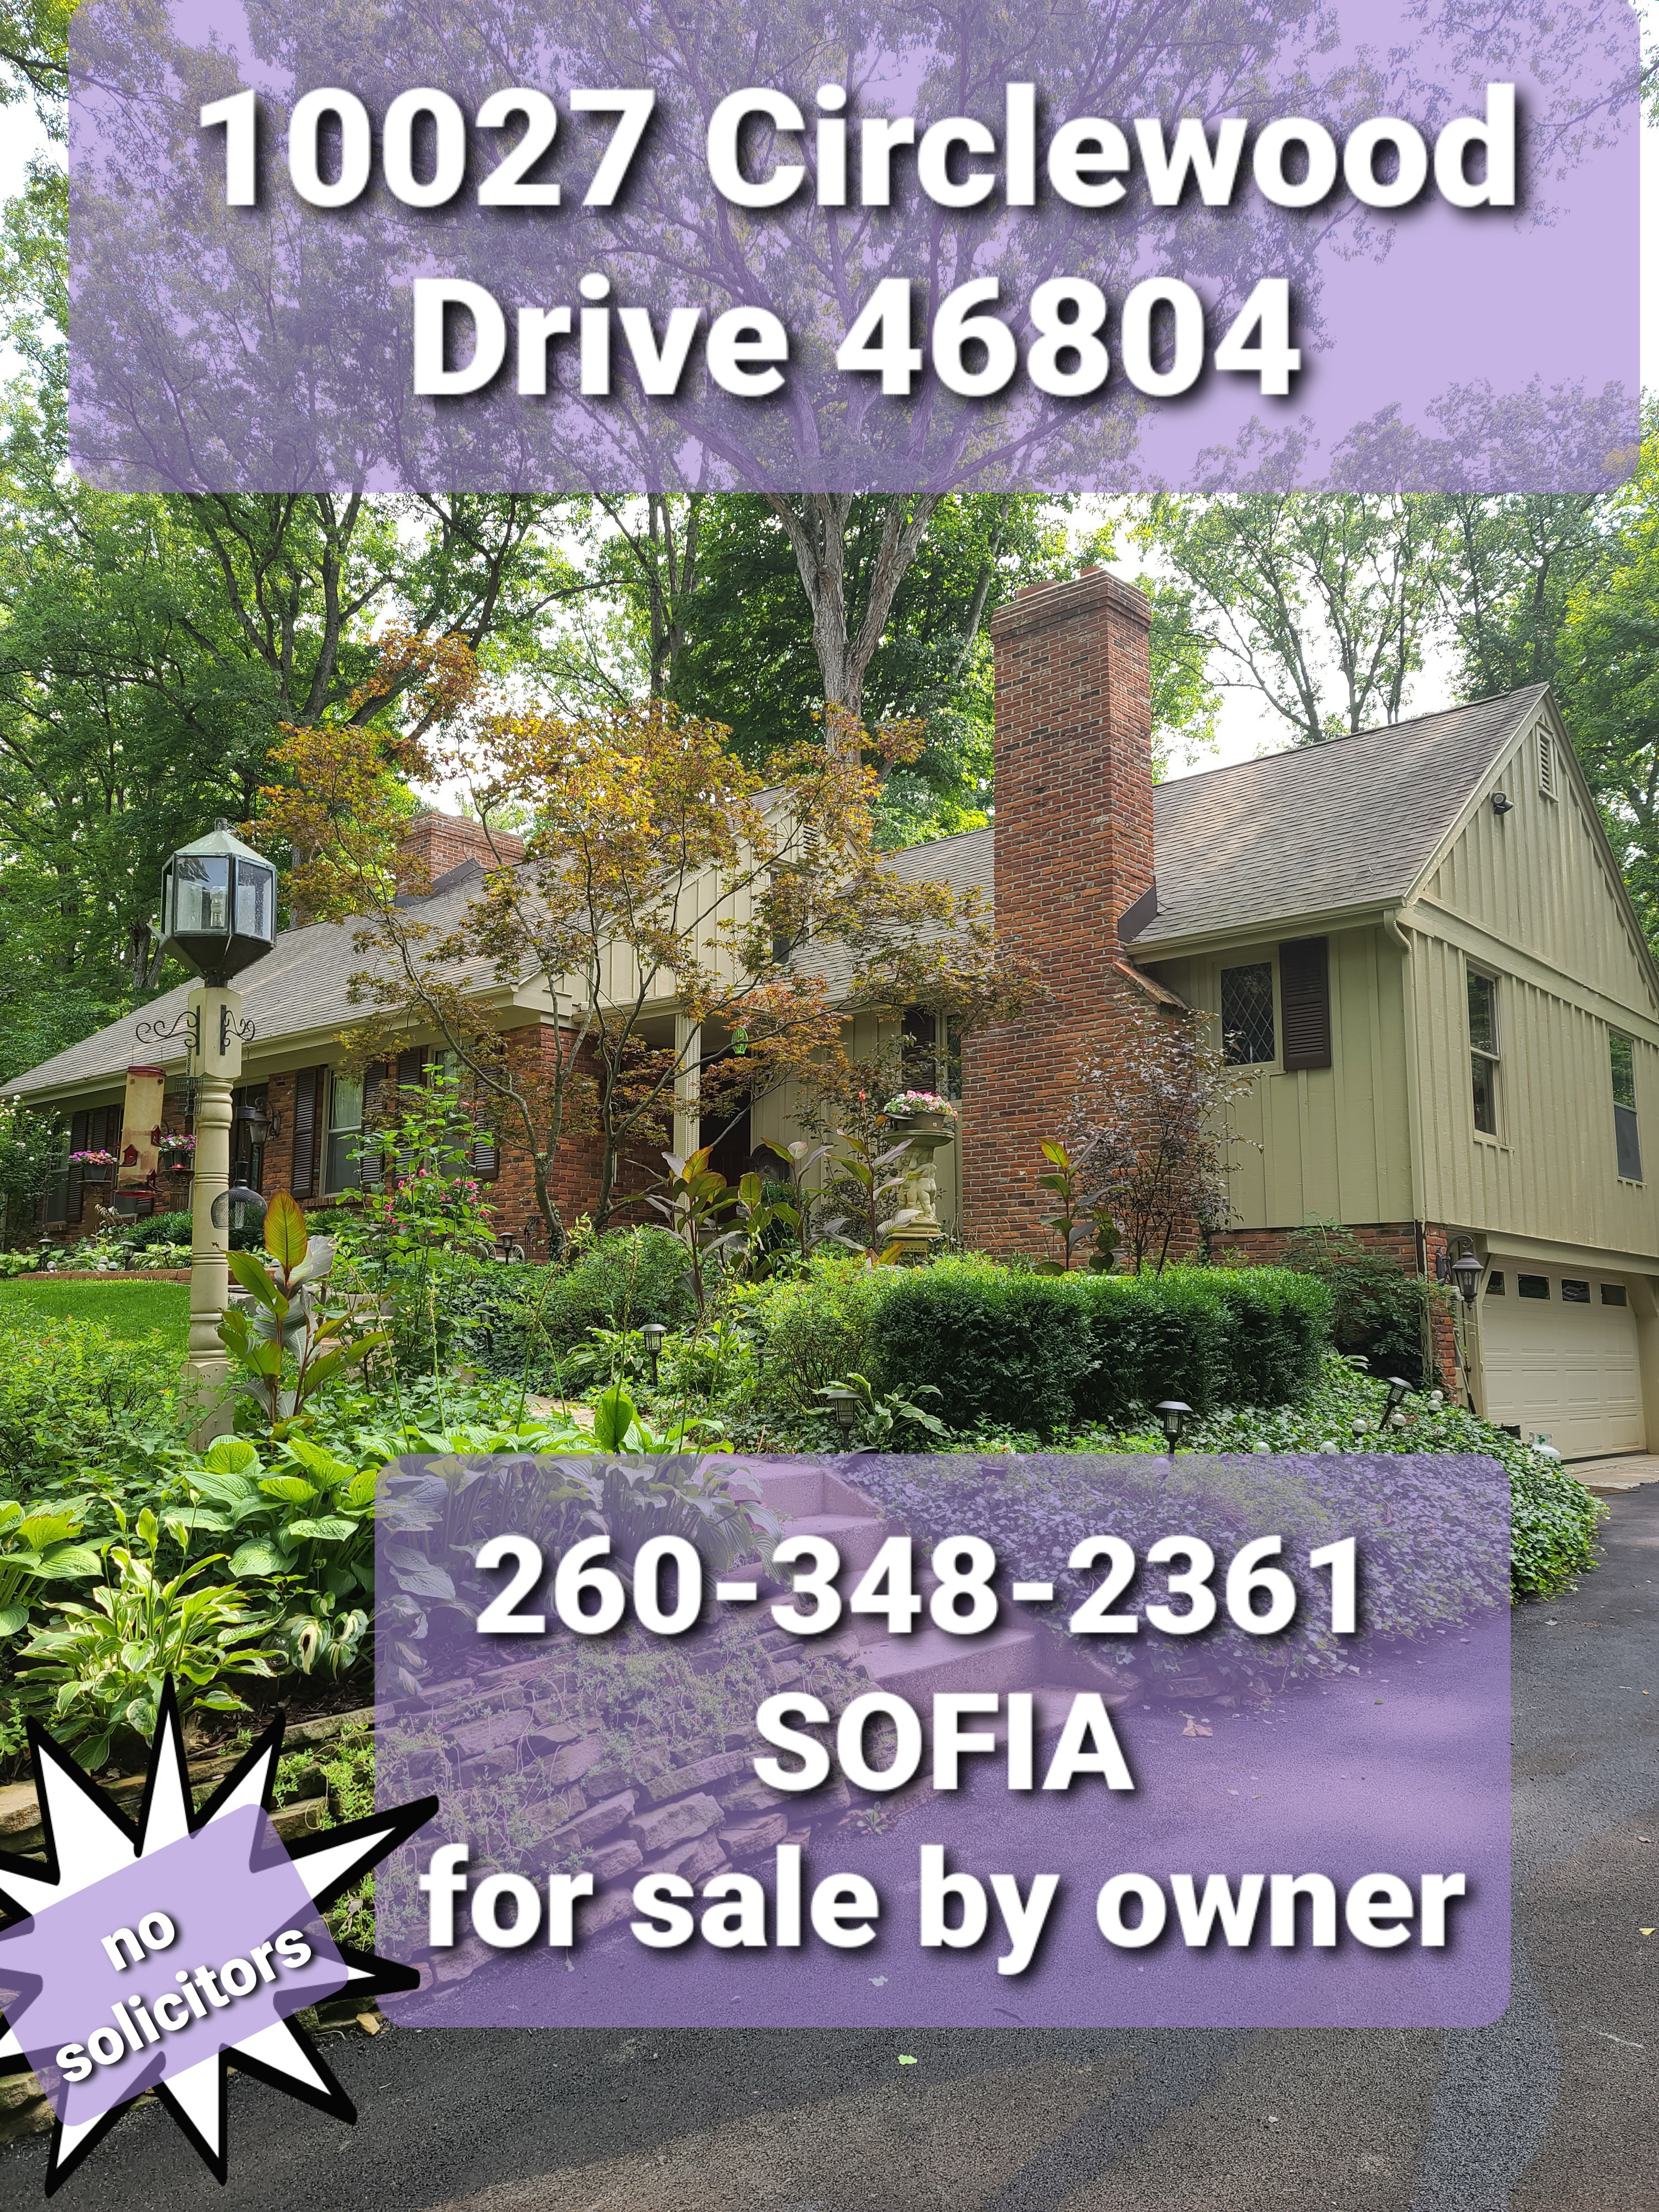 Homes for sale Fort Wayne. Shop local by using a local website to...